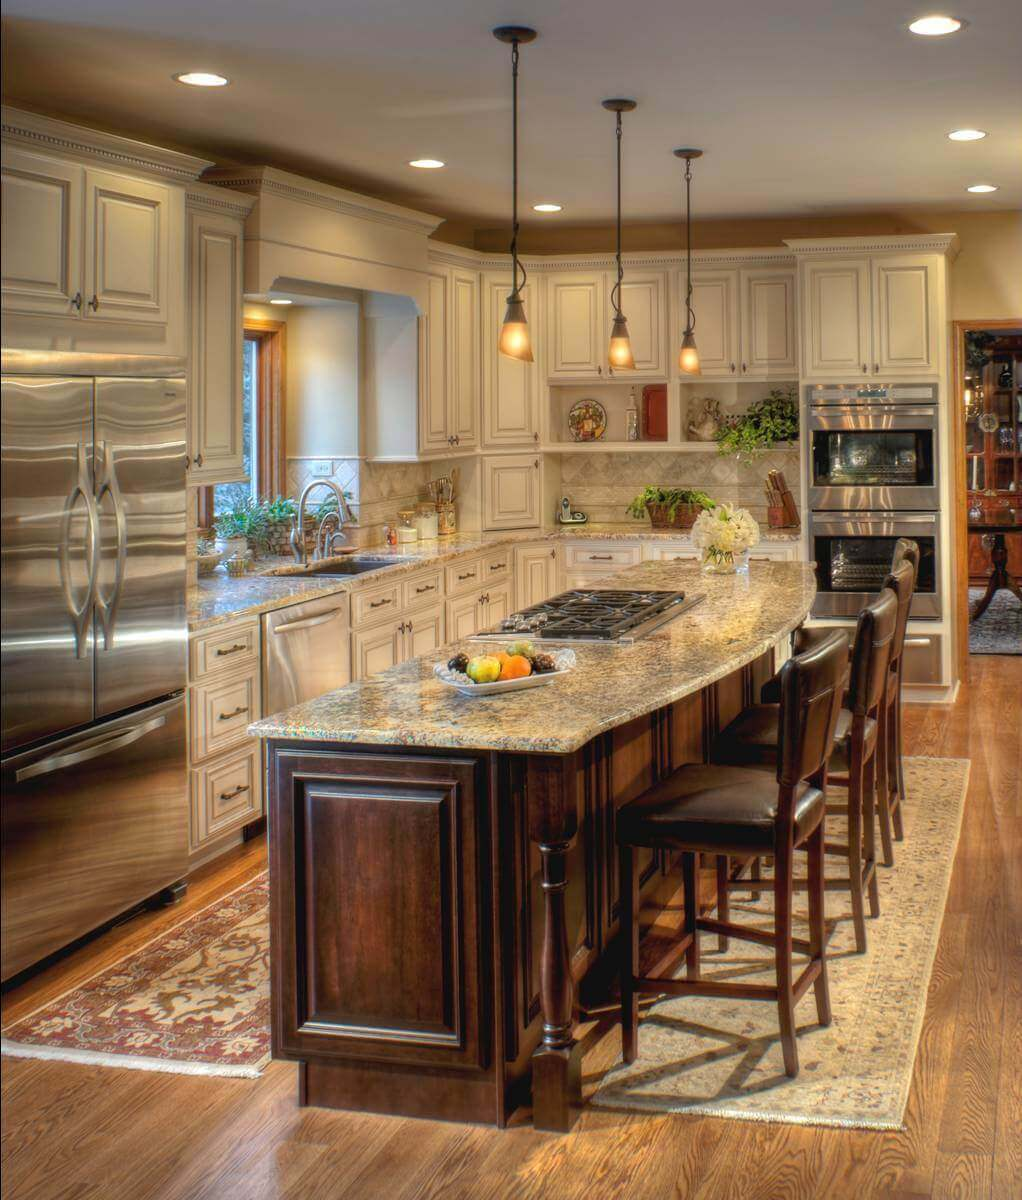 Ellegant Portable Kitchen Cabinet: 68+Deluxe Custom Kitchen Island Ideas (Jaw Dropping Designs